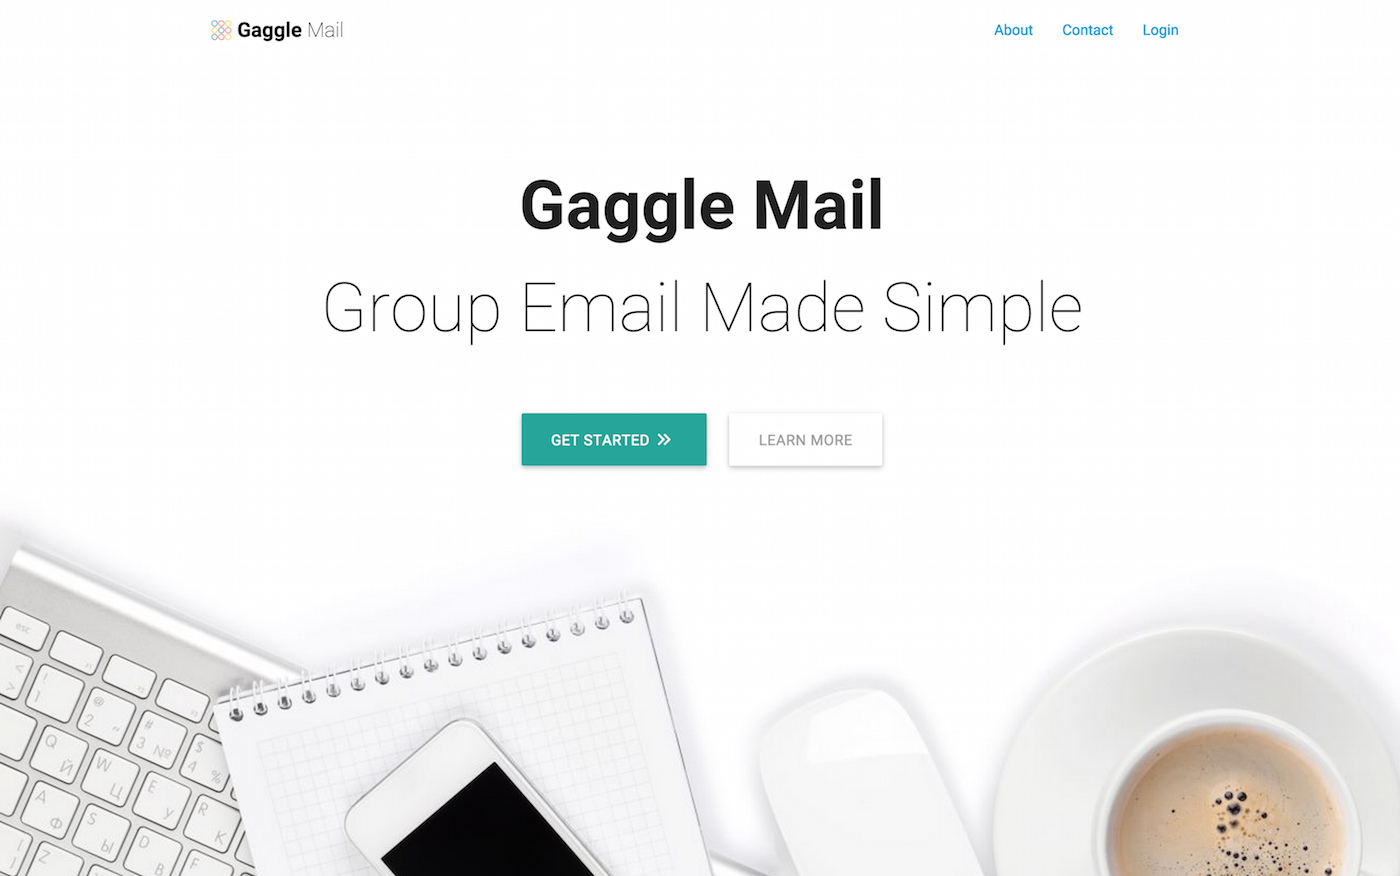 Gaggle Mail homepage at launch.